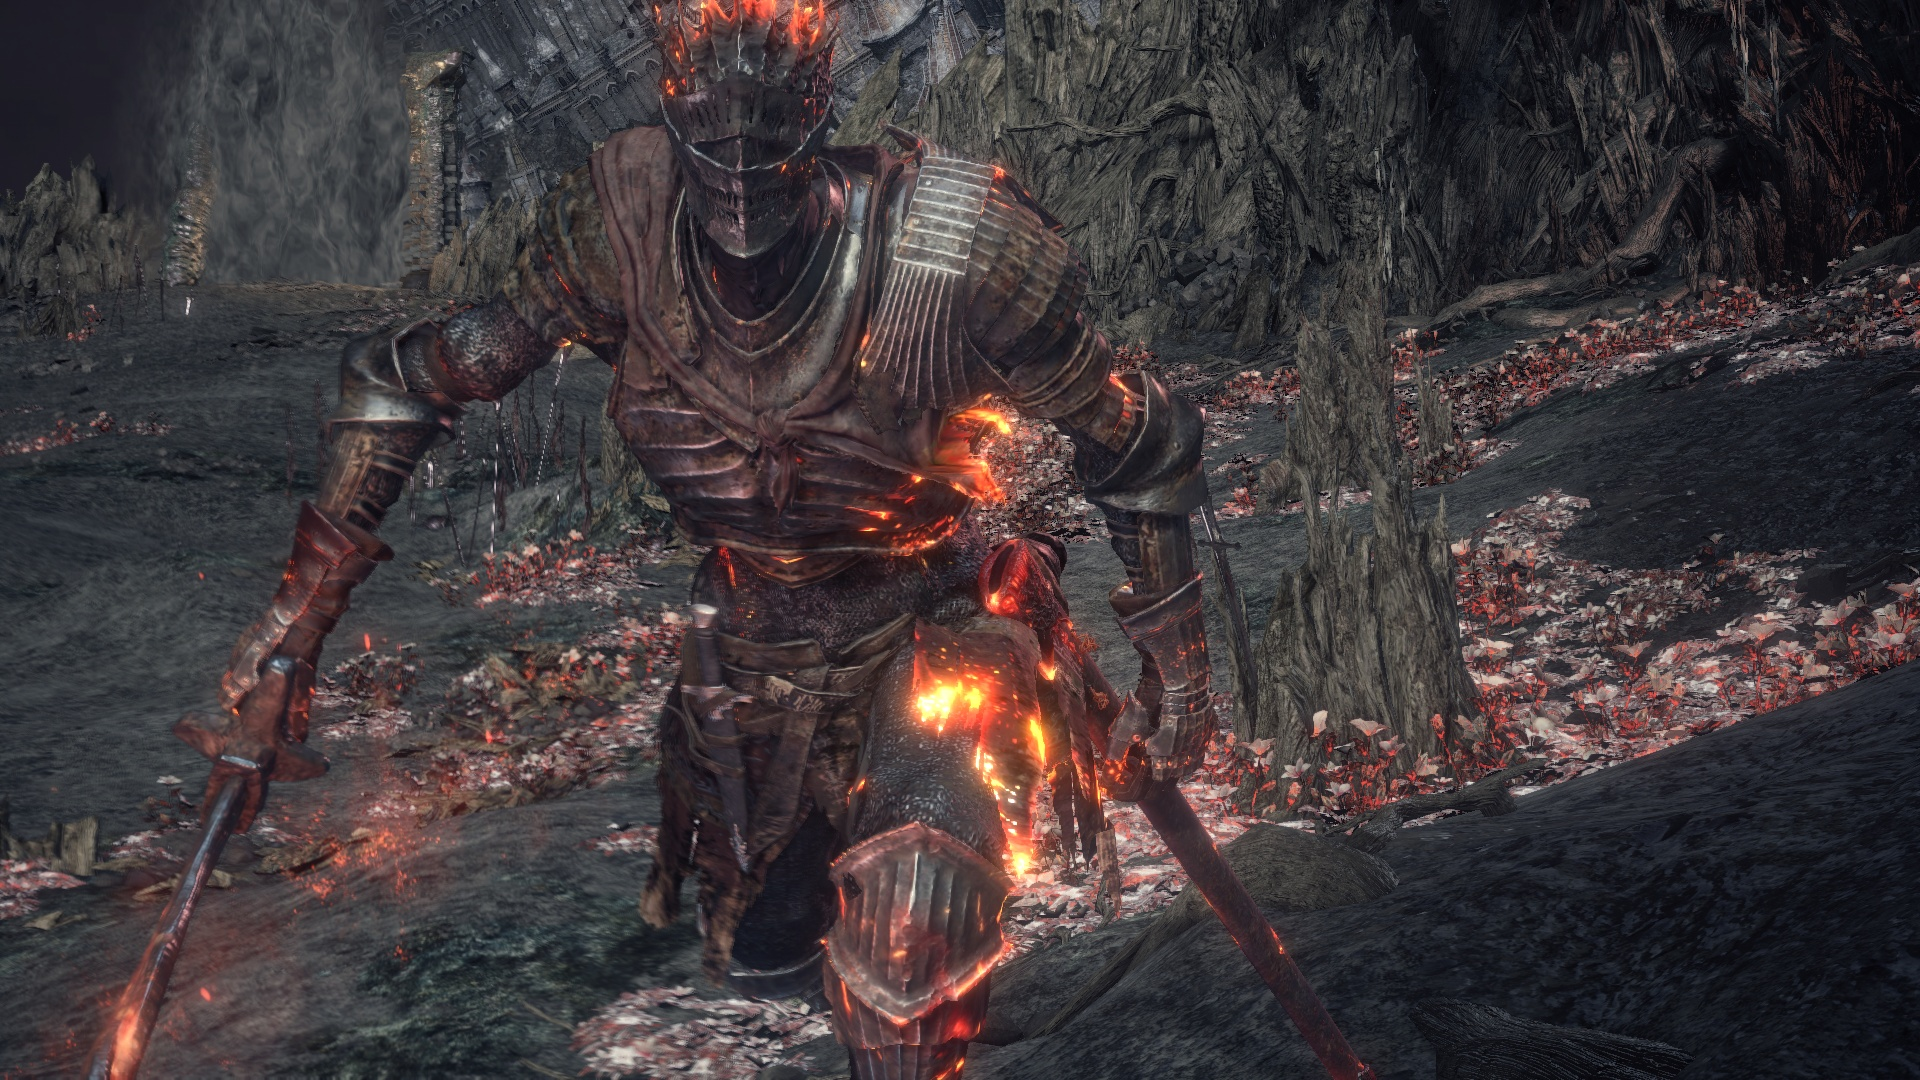 Dark Souls 3 Red Knight Soul Of Cinder Wip Rpf Costume And Prop Maker Community